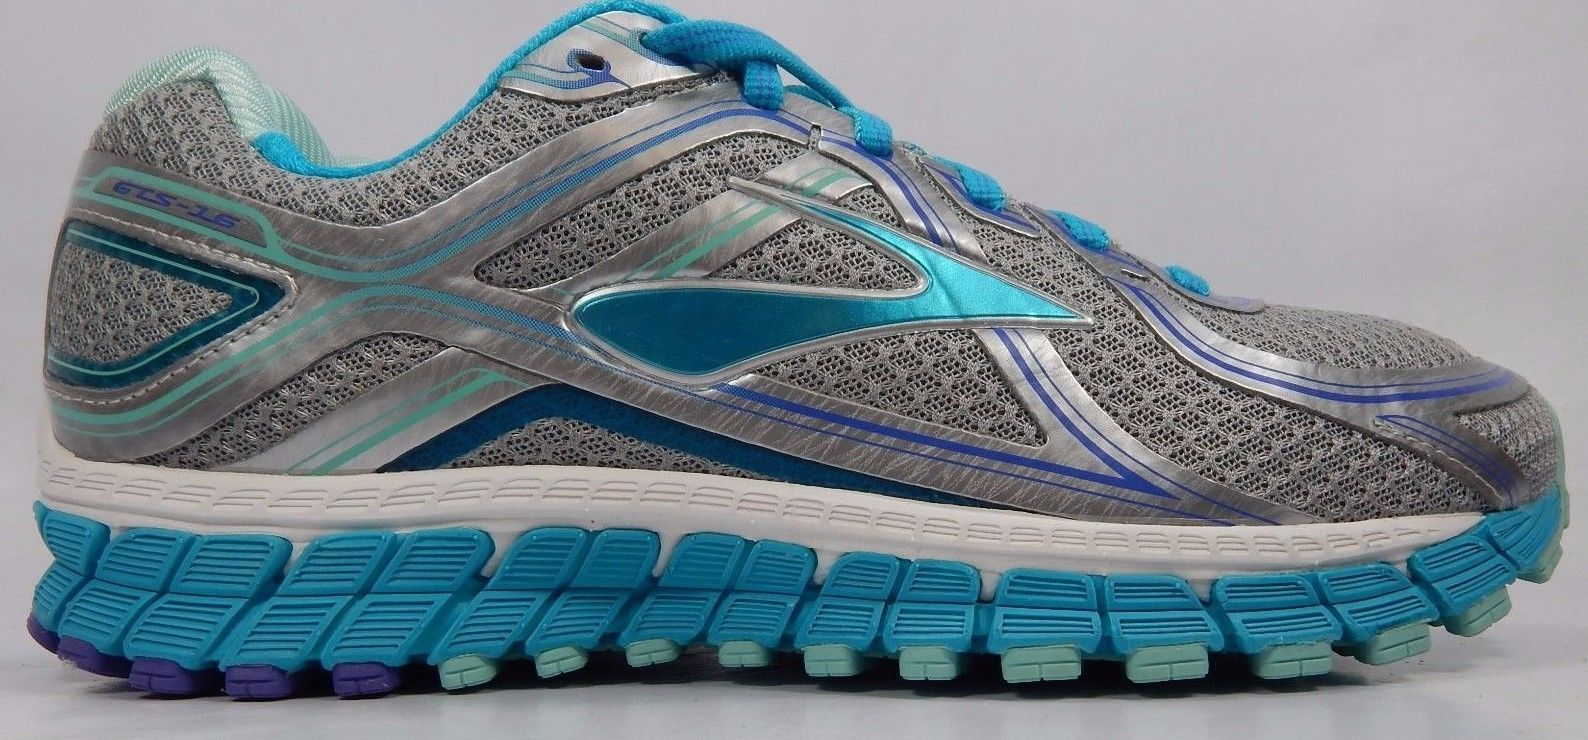 dd657fc85b93 Brooks GTS 16 Women s Running Shoe Size US 9.5 M (B) EU 41 Silver ...